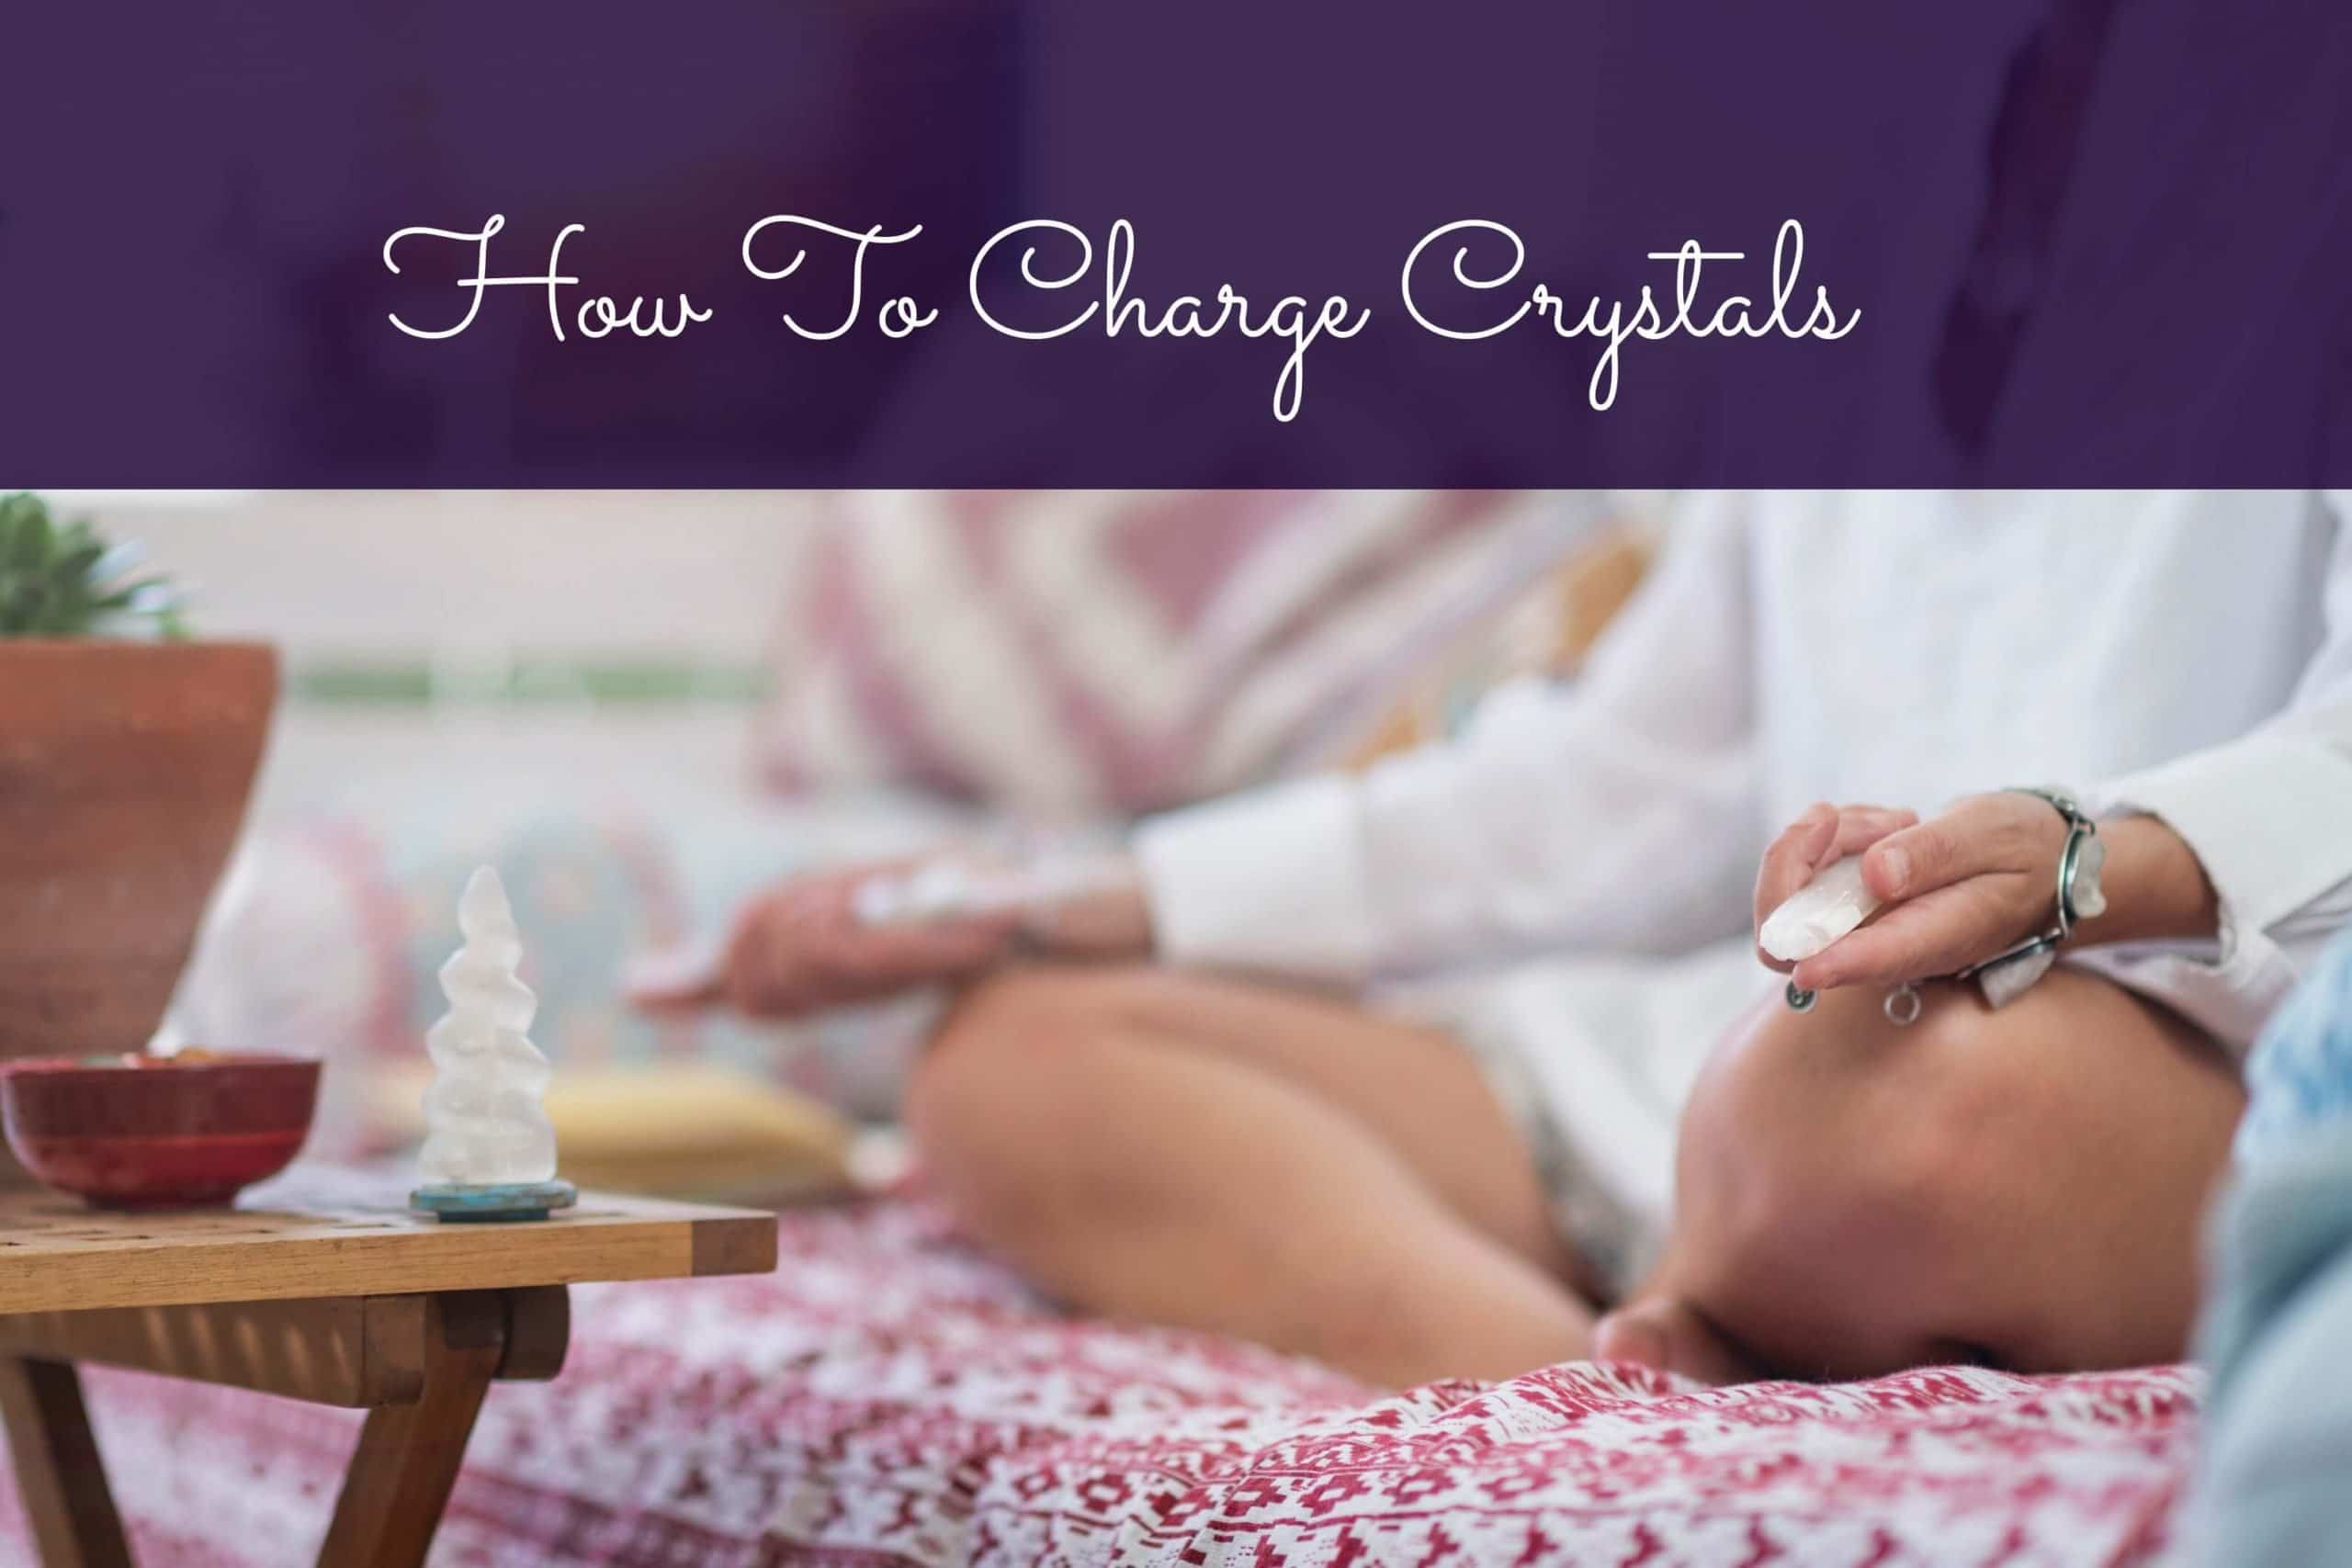 how to cleanse crystals with sage